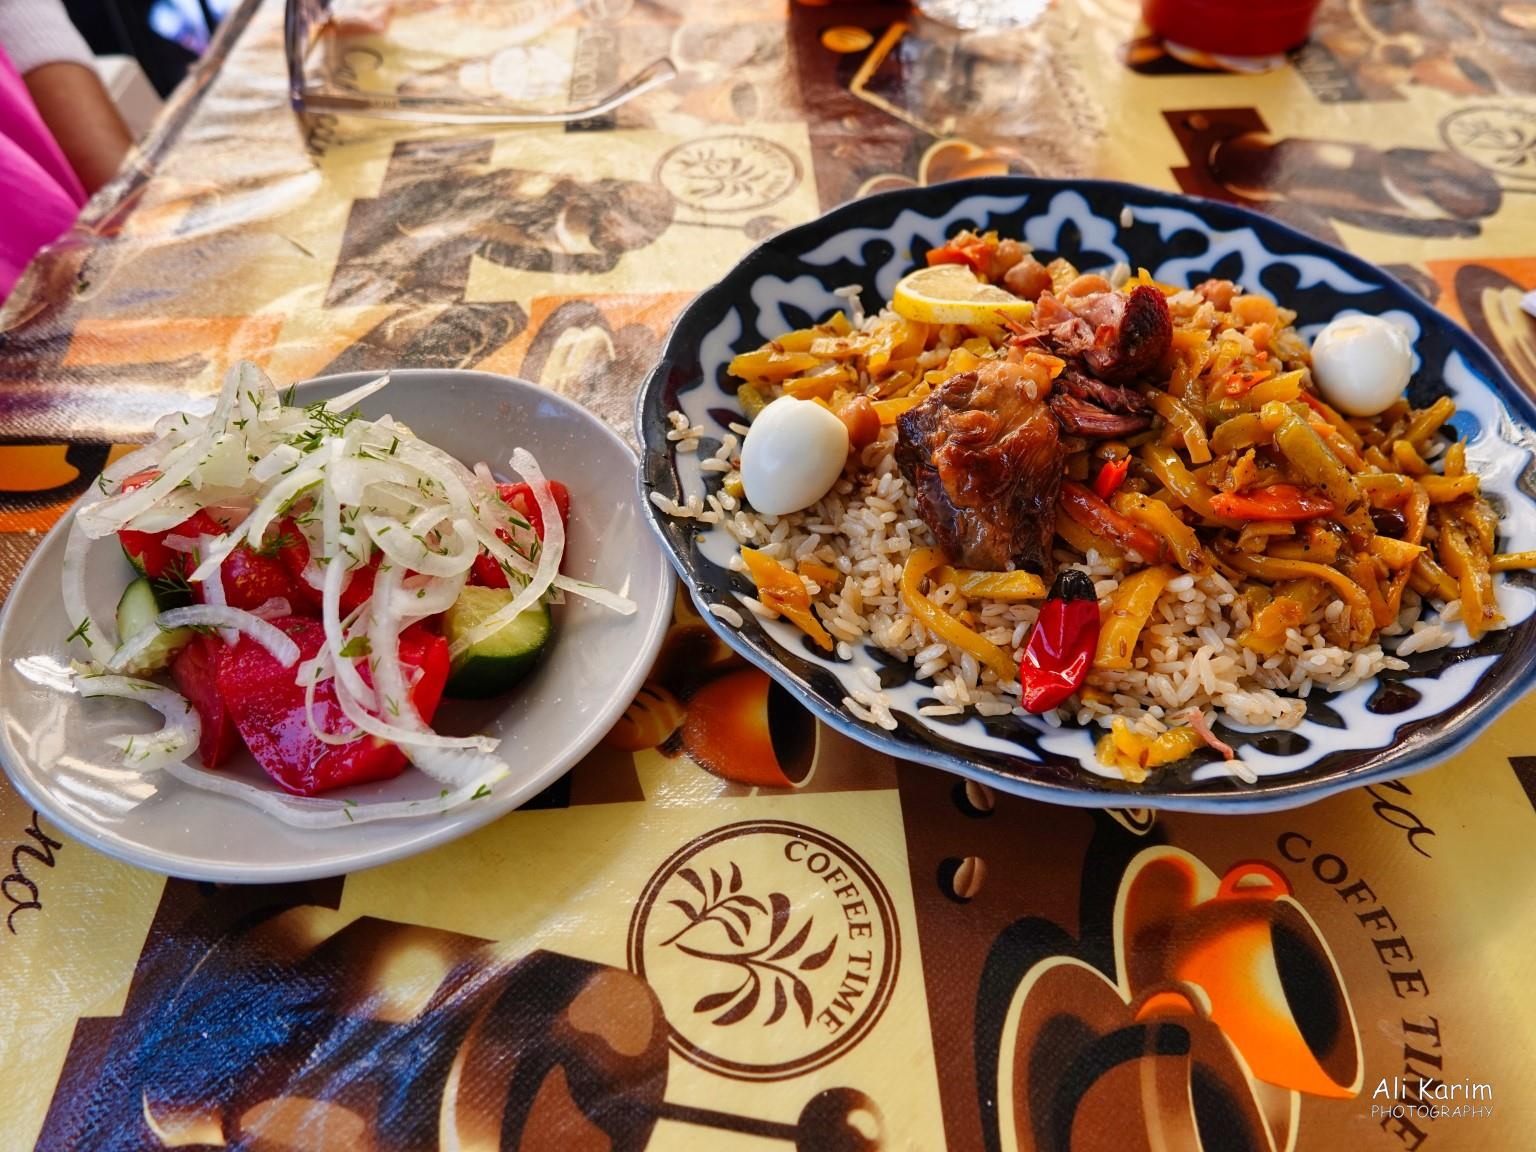 More Samarkand, Delicious Plov and accompaniments with chai of course :)